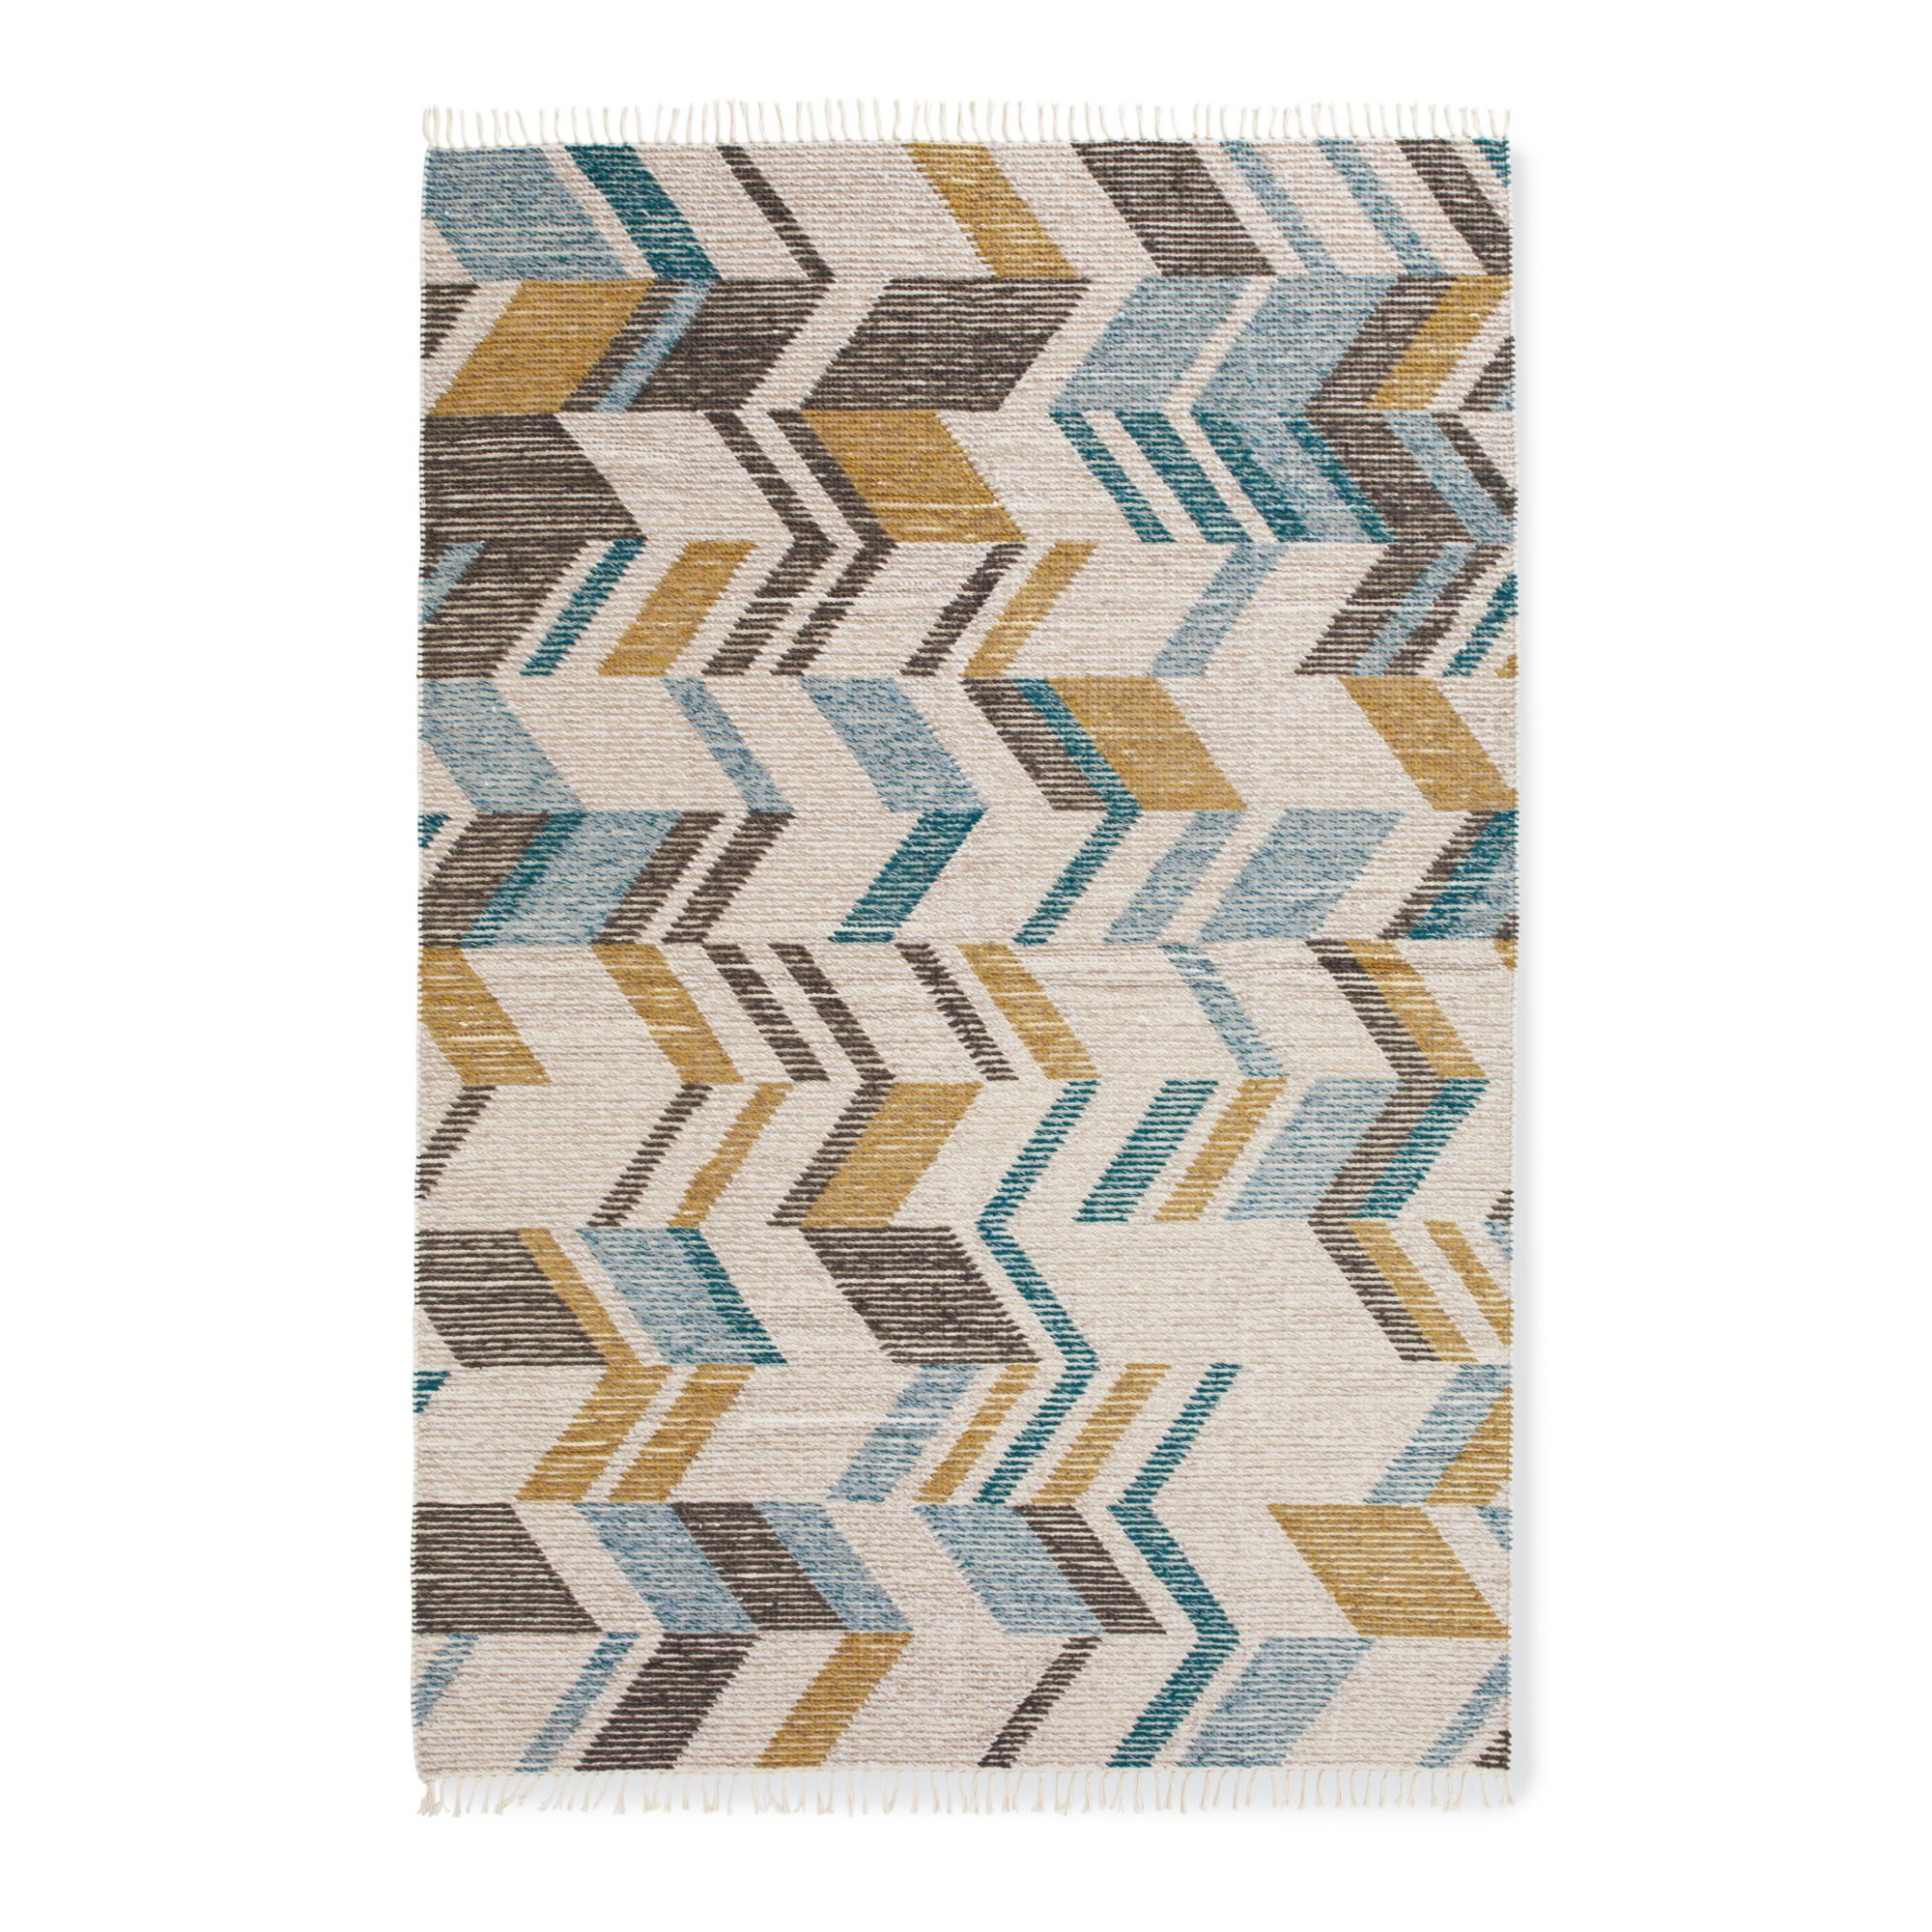 Palani Rug Design Within Reach In 2020 Rugs Rug Design Kilim Rugs